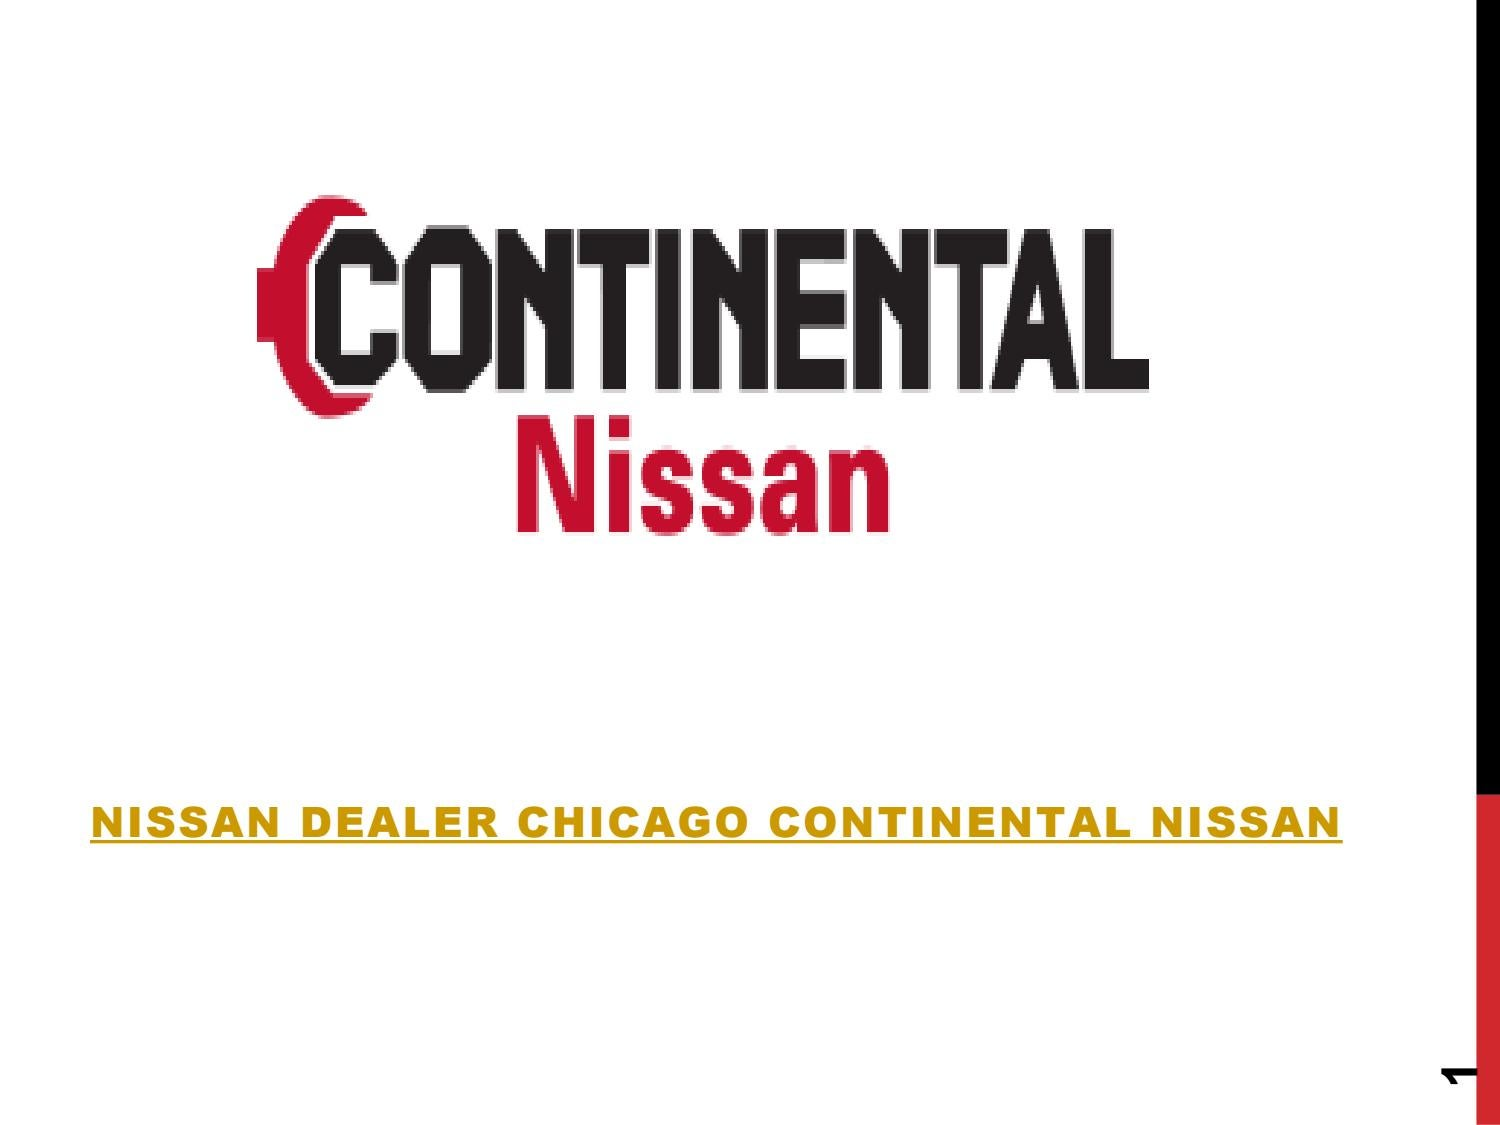 Nissan Dealer Chicago >> Nissan Dealer Chicago Continental Nissan By Continetal